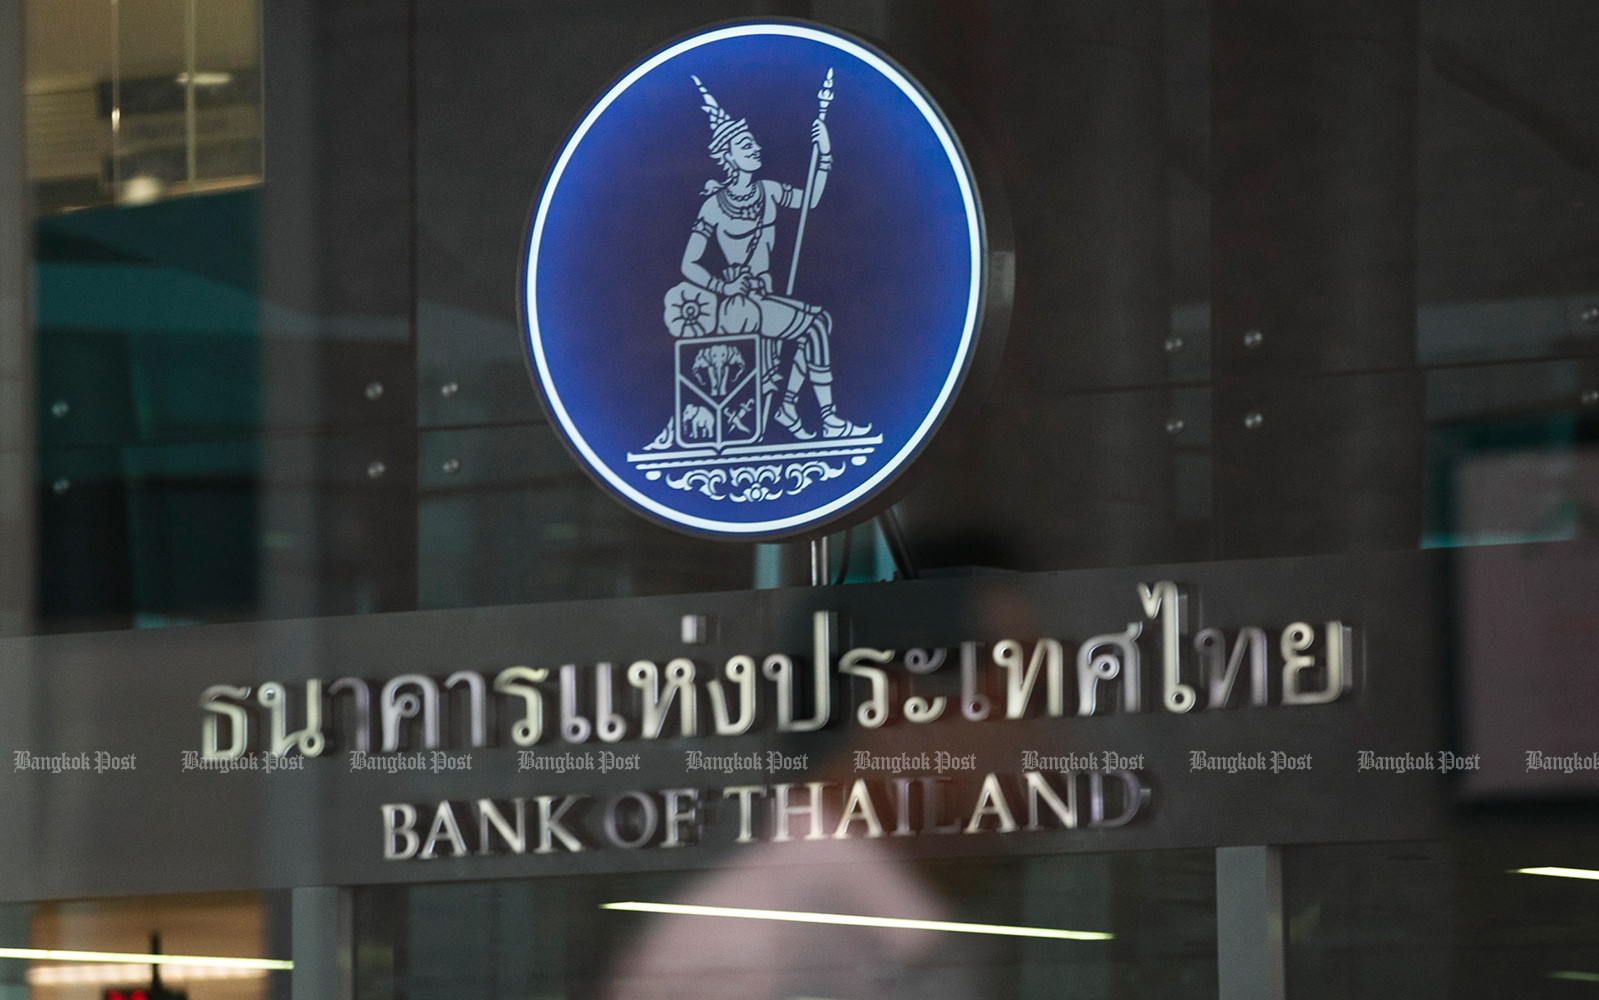 Fitch Ratings supports the Bank of Thailand's capital distribution restrictions. (Bangkok Post photo)